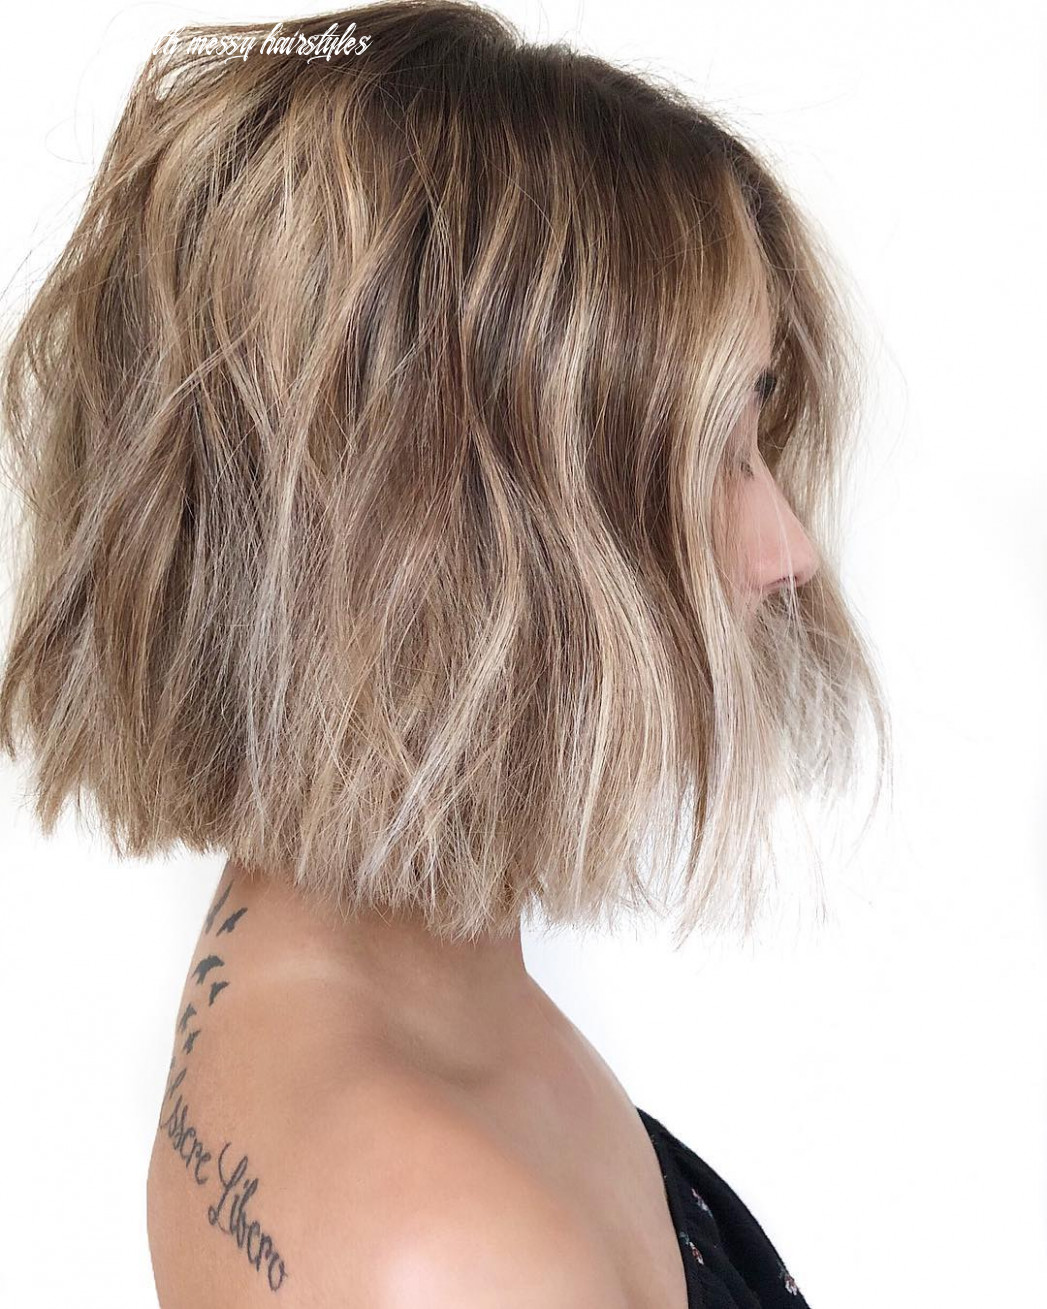 12 trendy messy bob hairstyles and haircuts, 12 female short